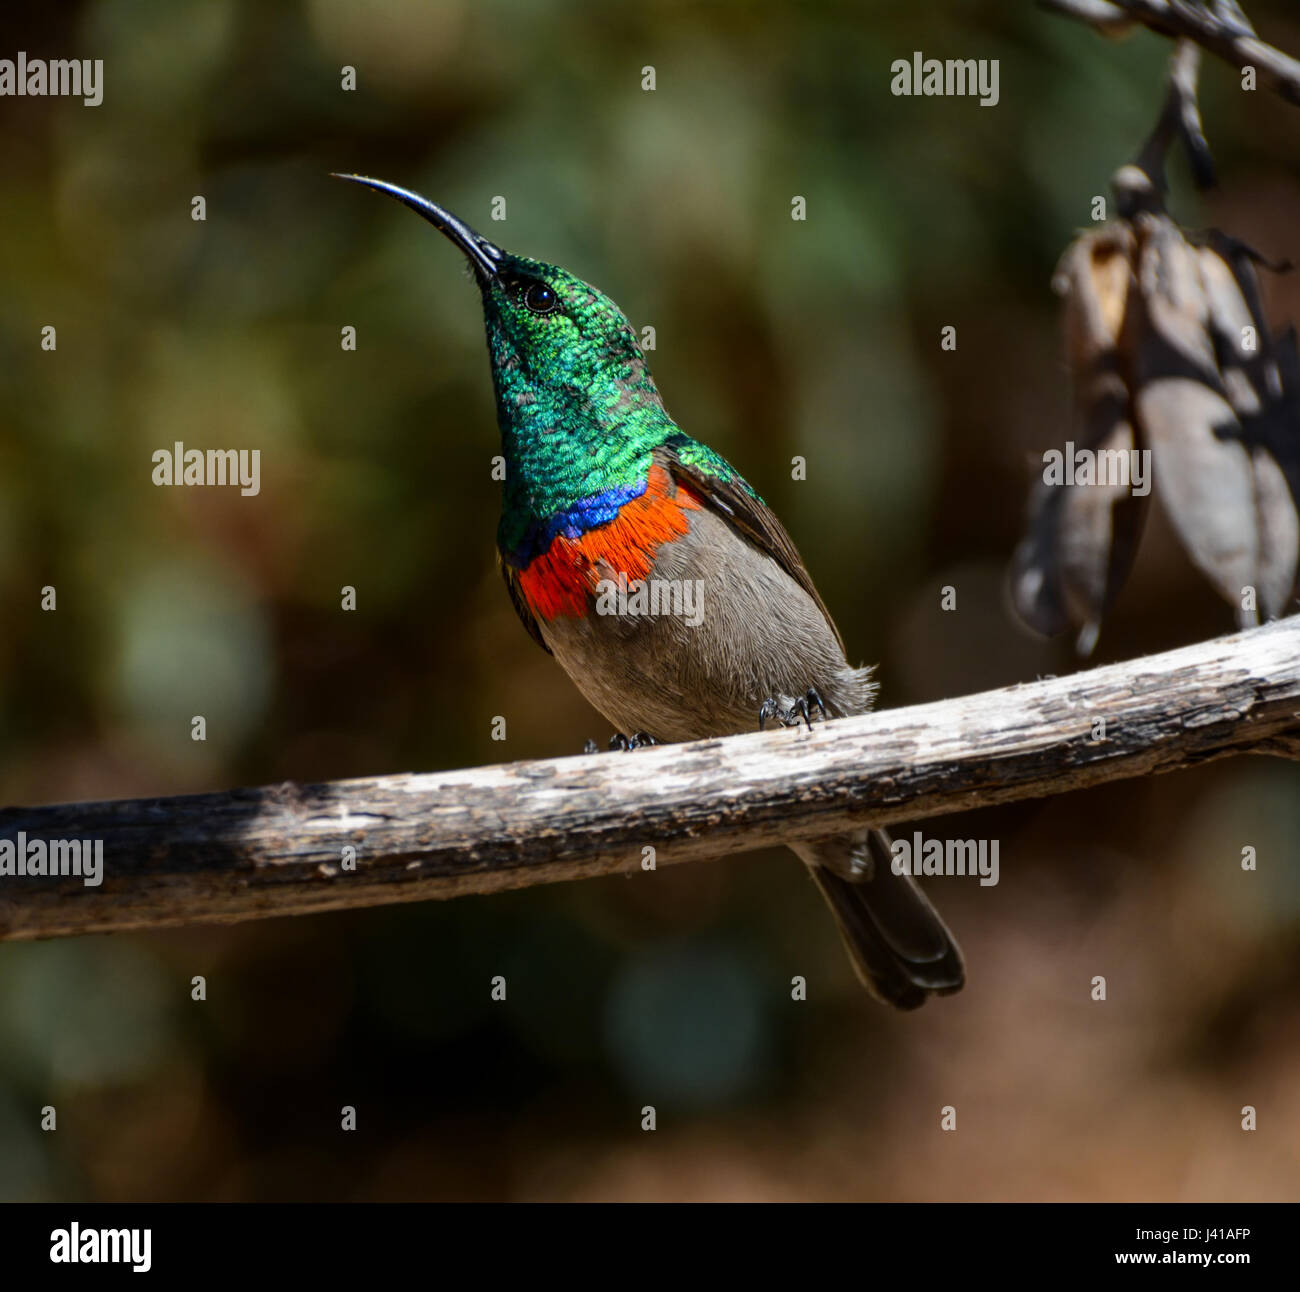 Male Double-collared Sunbird perched on a tree in Southern Africa - Stock Image